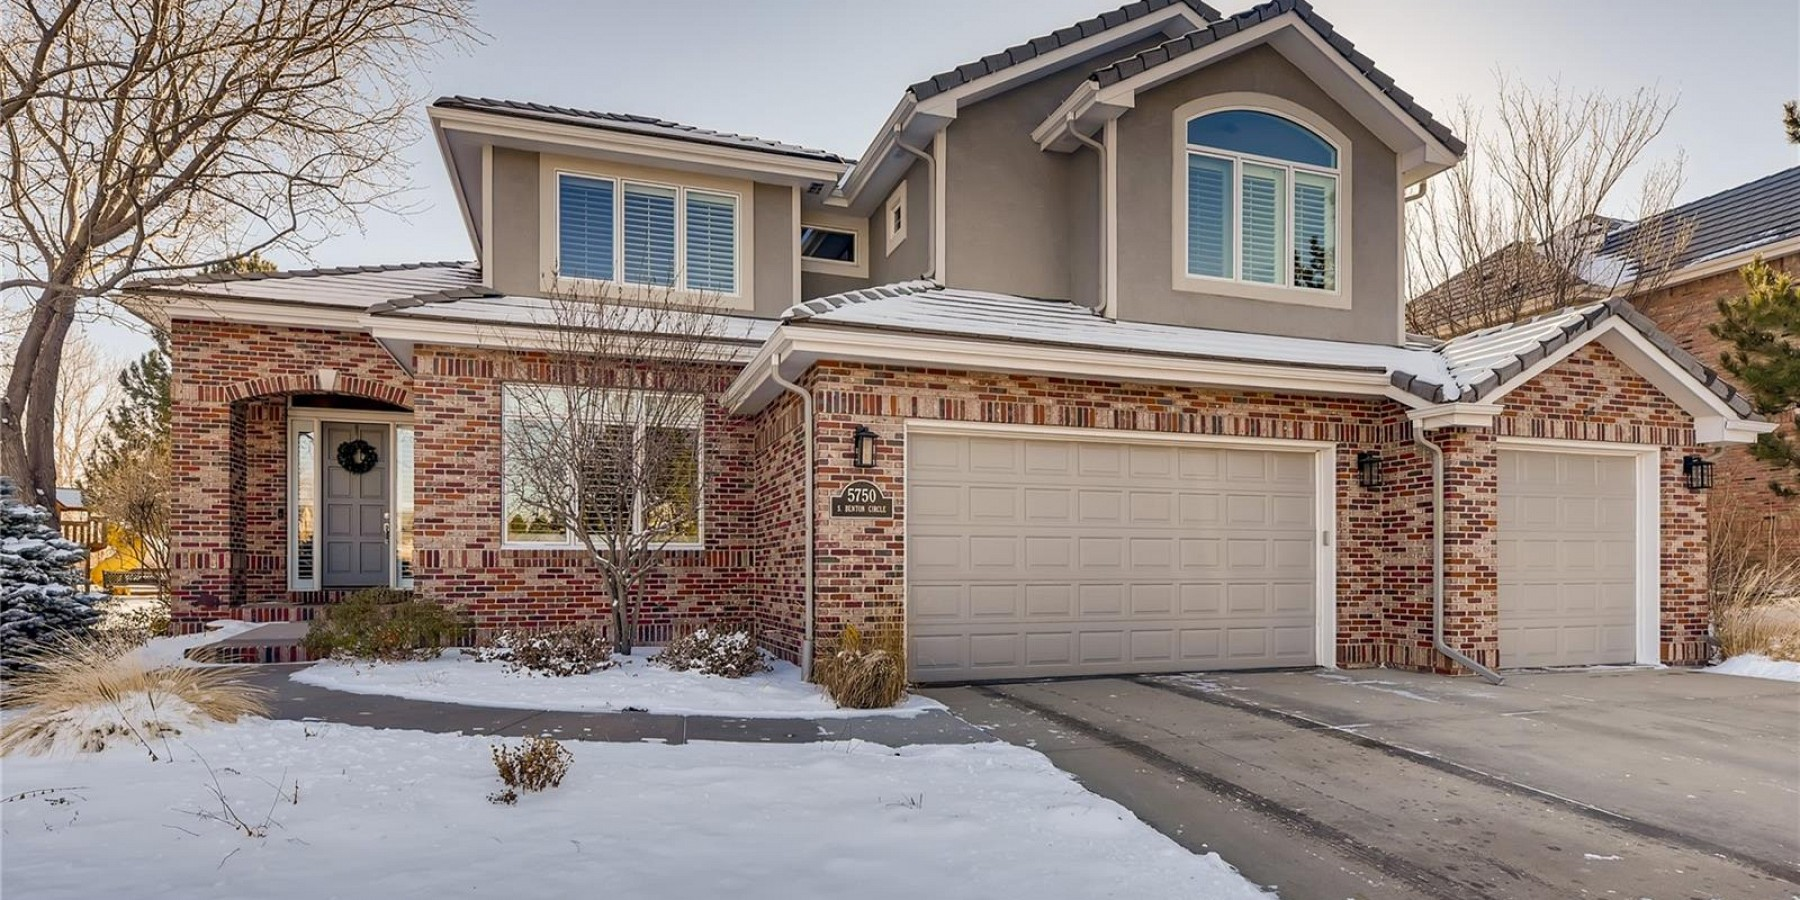 5750 S Benton Circle, Littleton, CO 80123